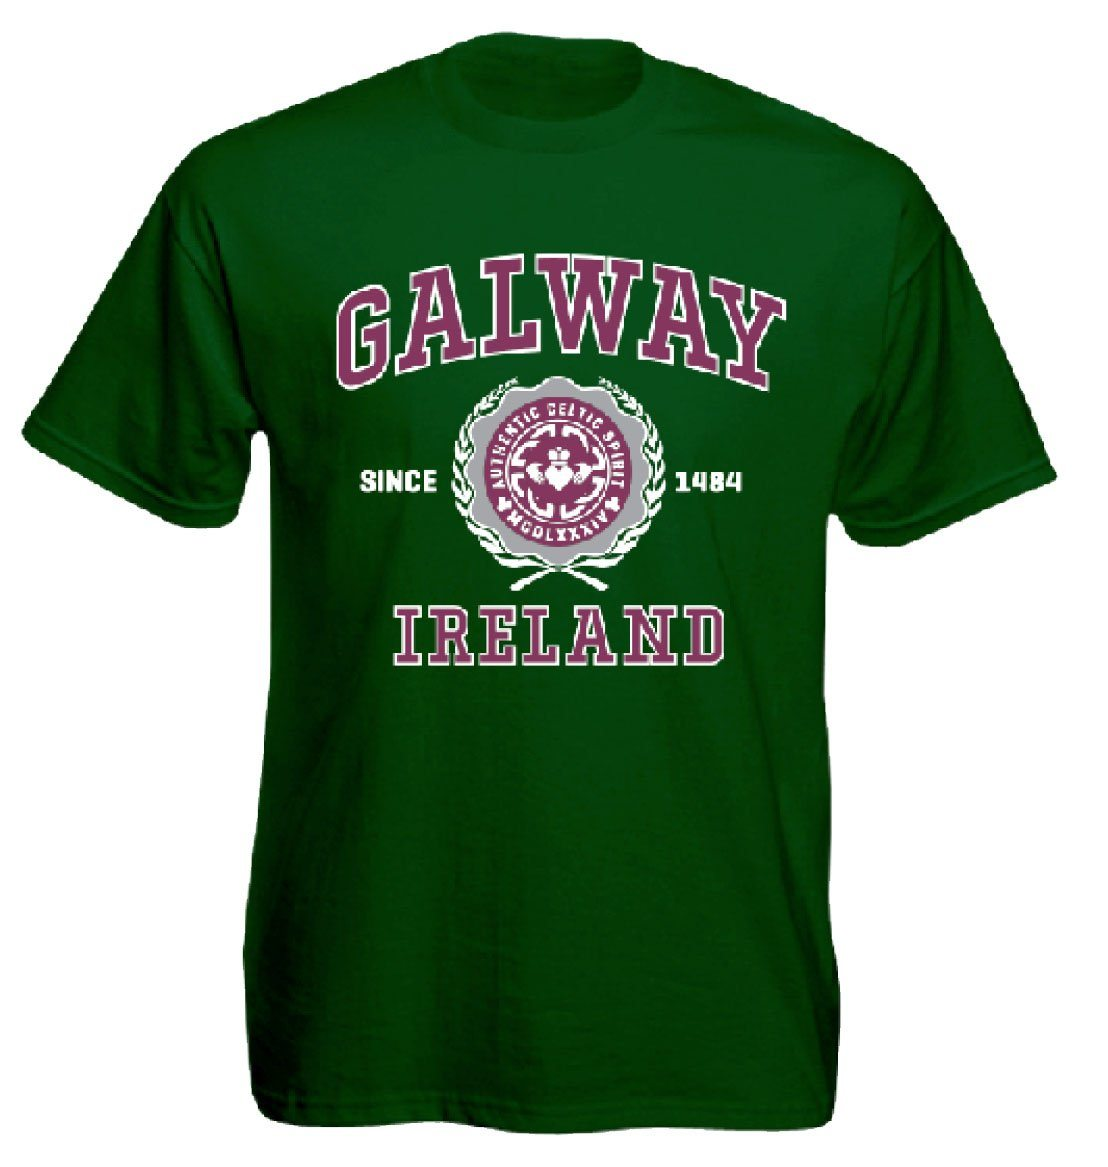 GALWAY CELTIC SPIRIT, Mens T-Shirts - seasonsofireland